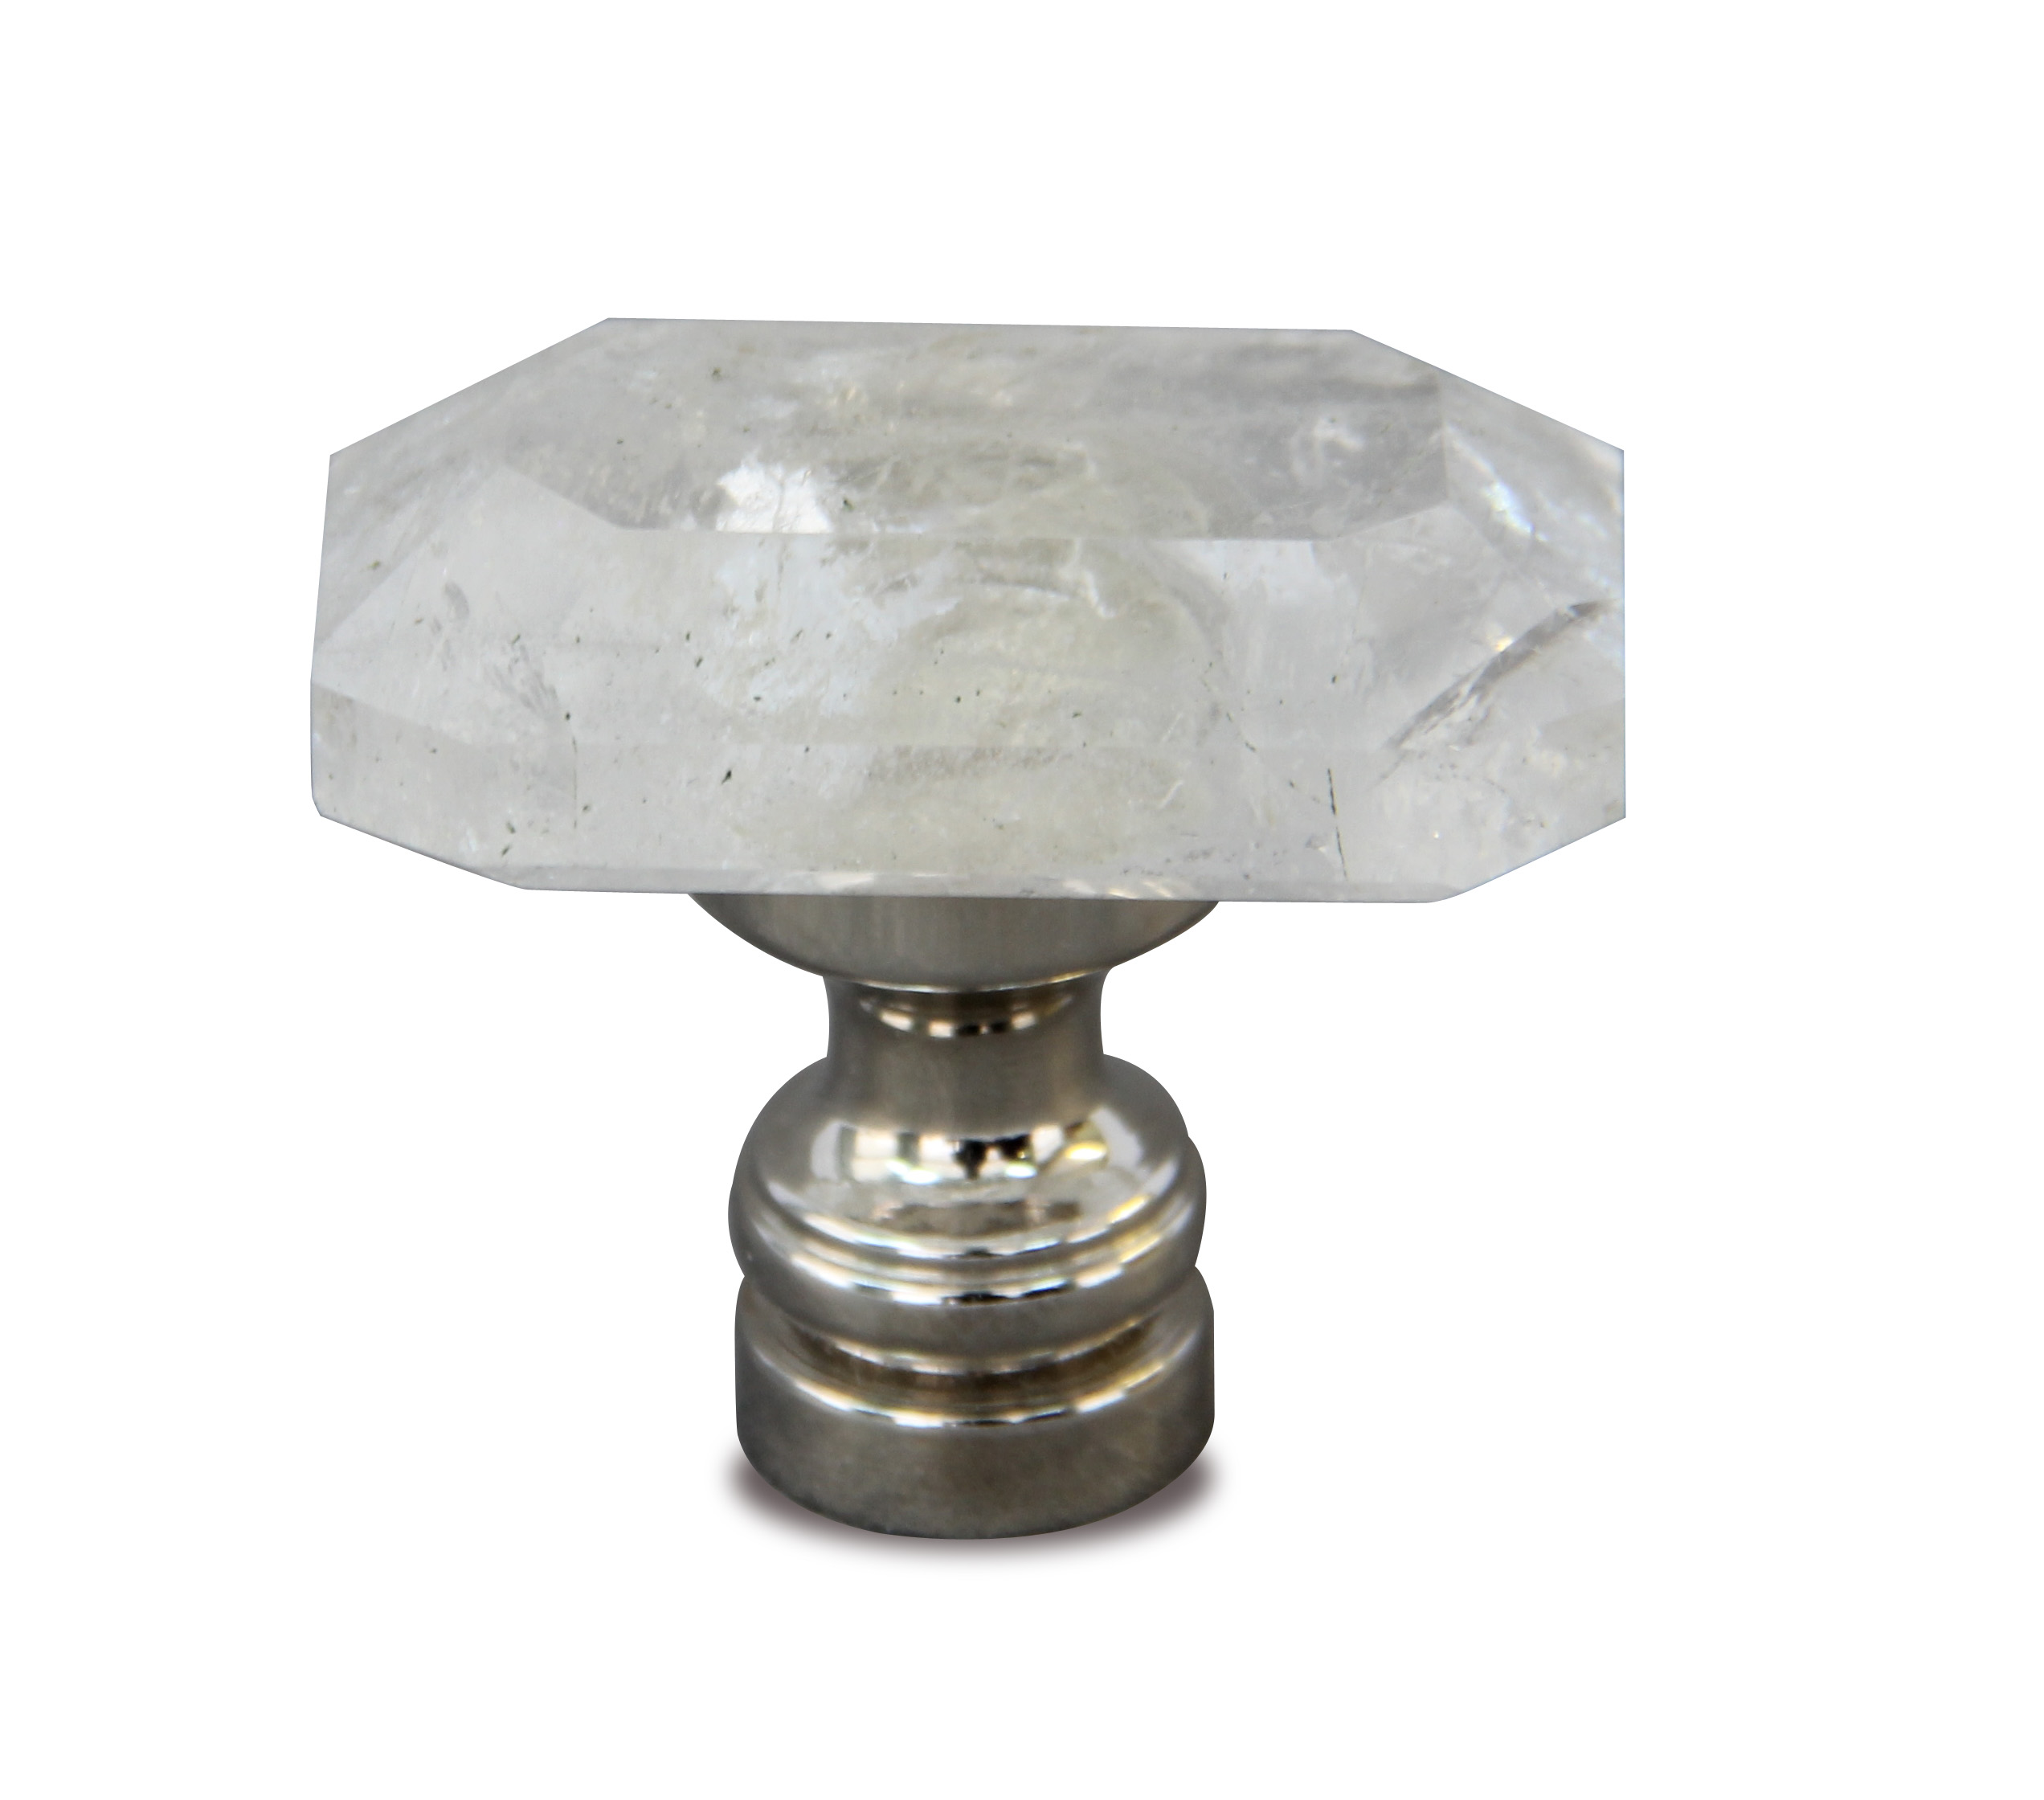 Captivating Jewel Rock Crystal Cabinet Knob In Polished Nickel Finish